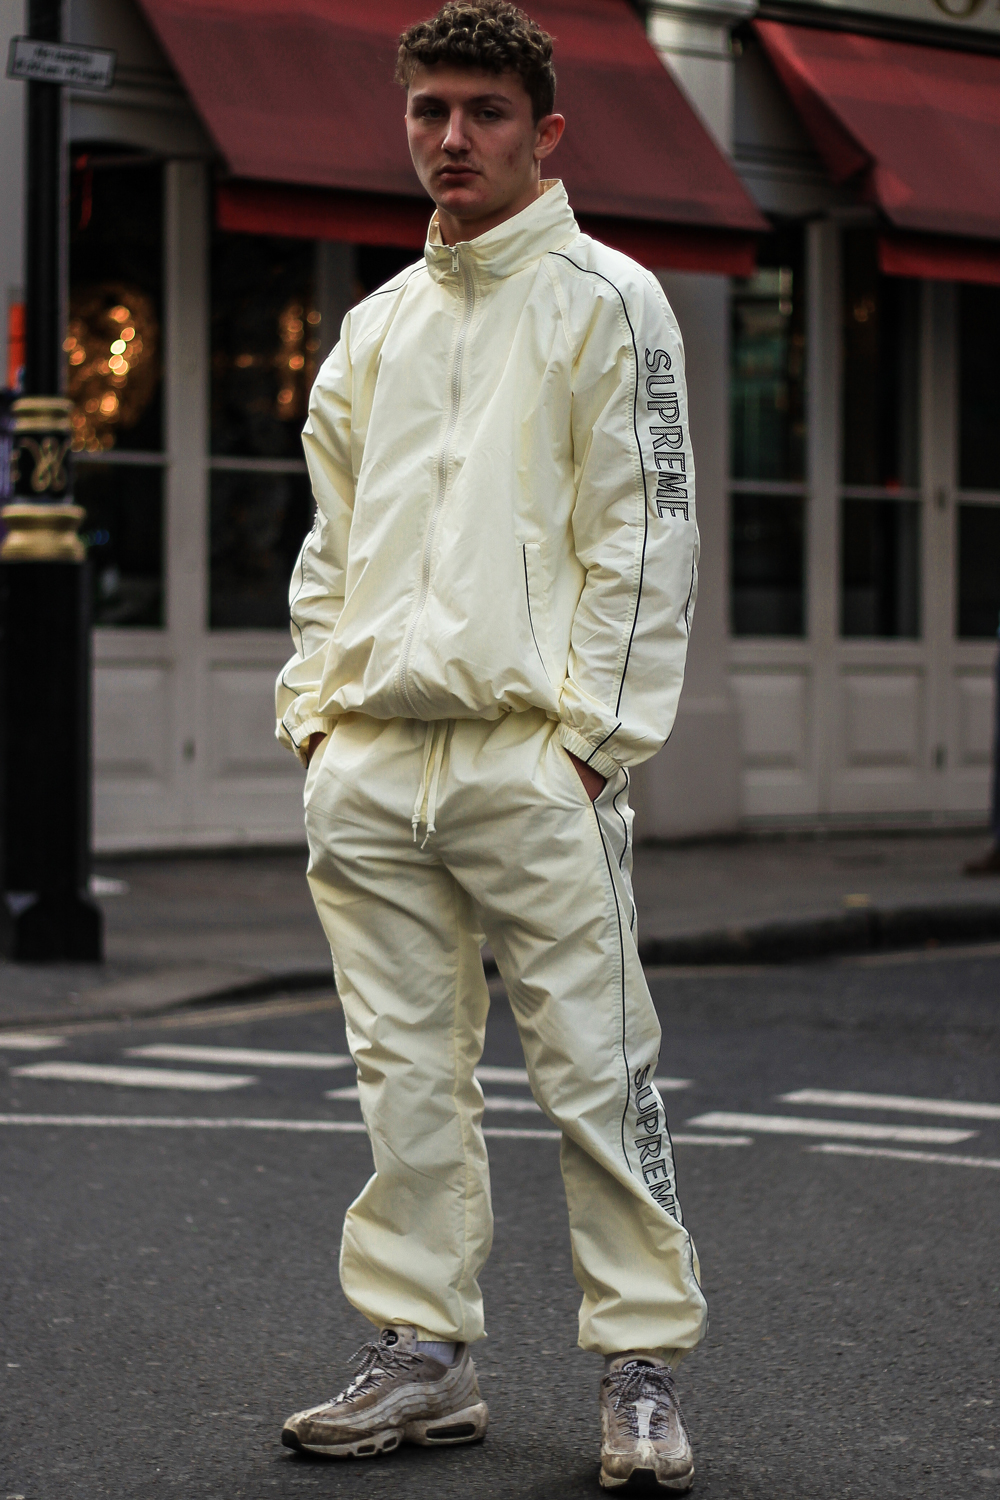 Supreme Collections Looks Streetwear - 3731849